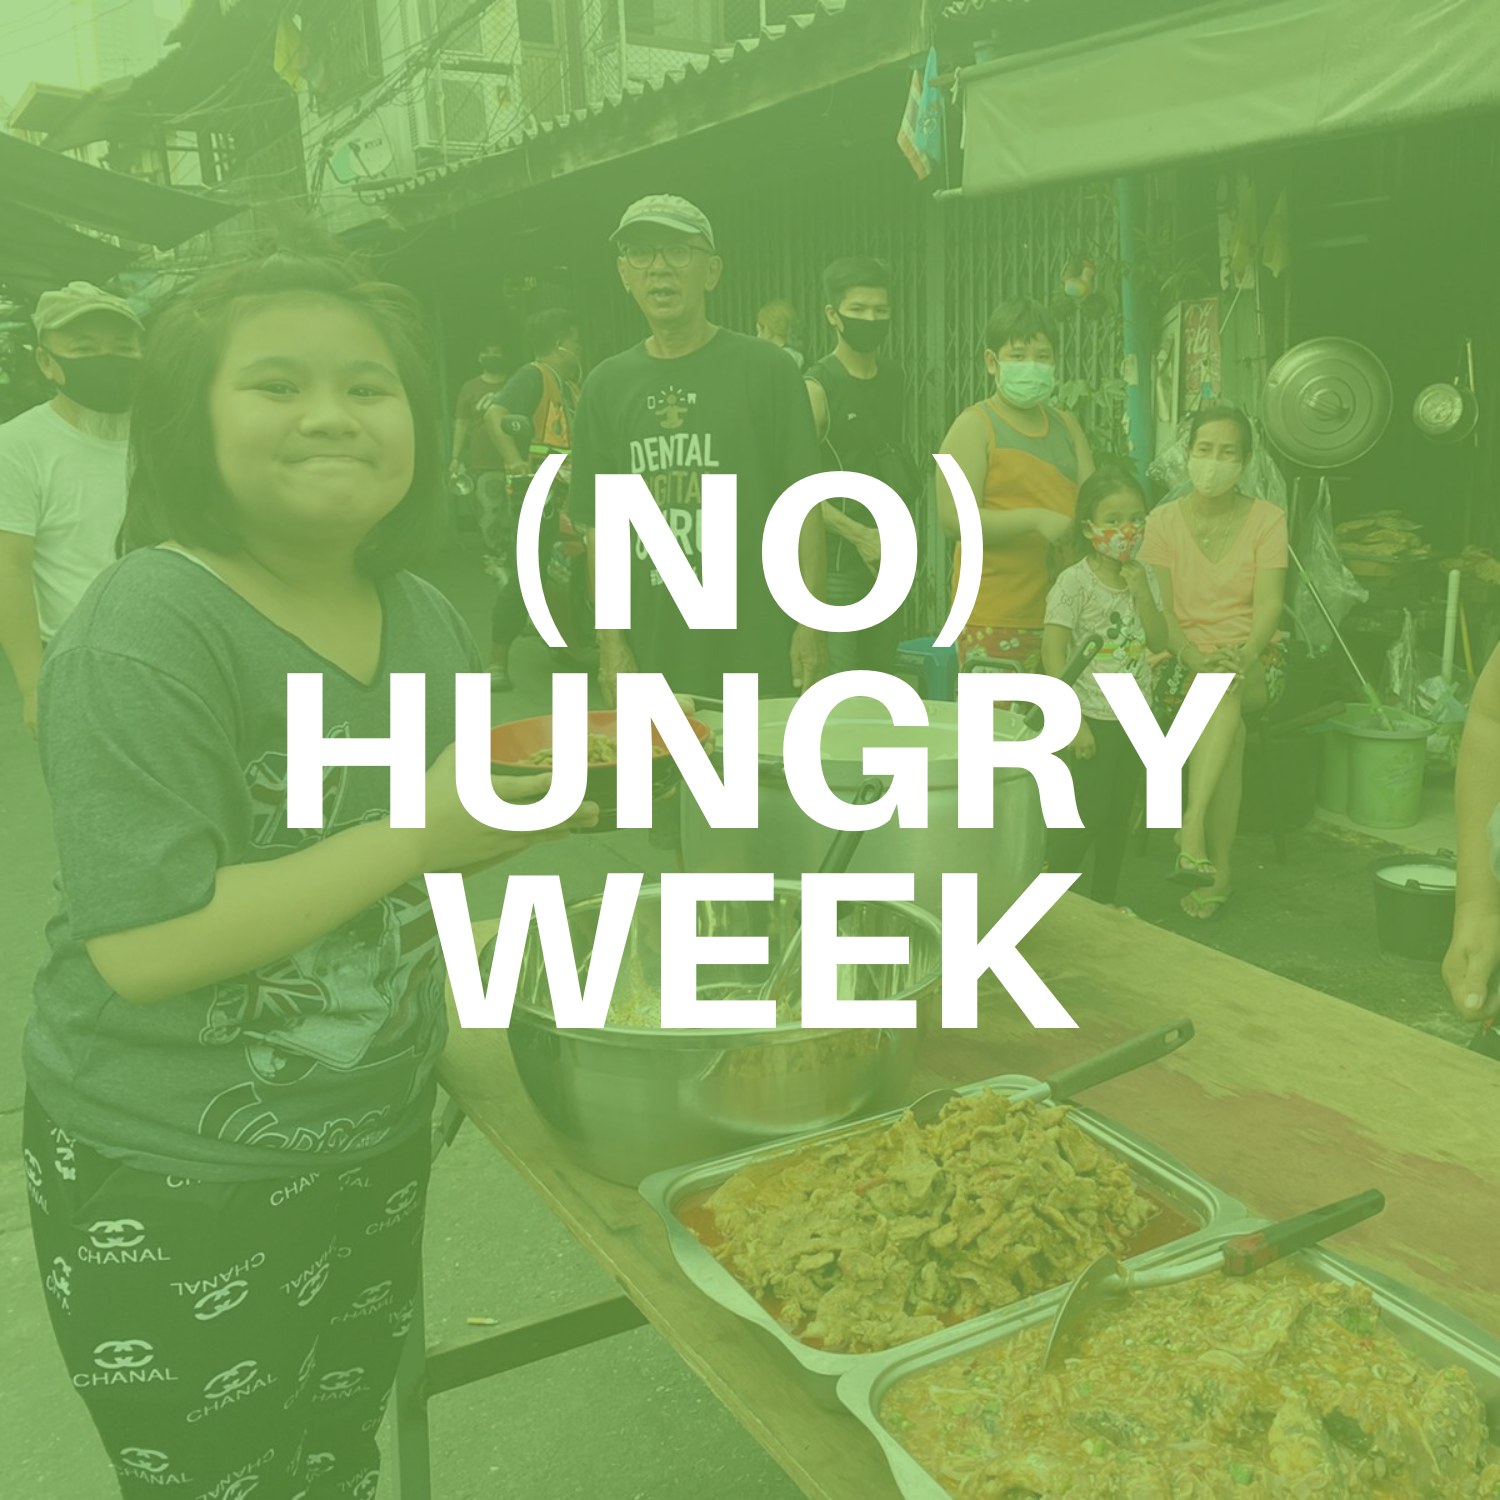 SUPPORT INDIVIDUALS BY MEALS FOR A WEEK